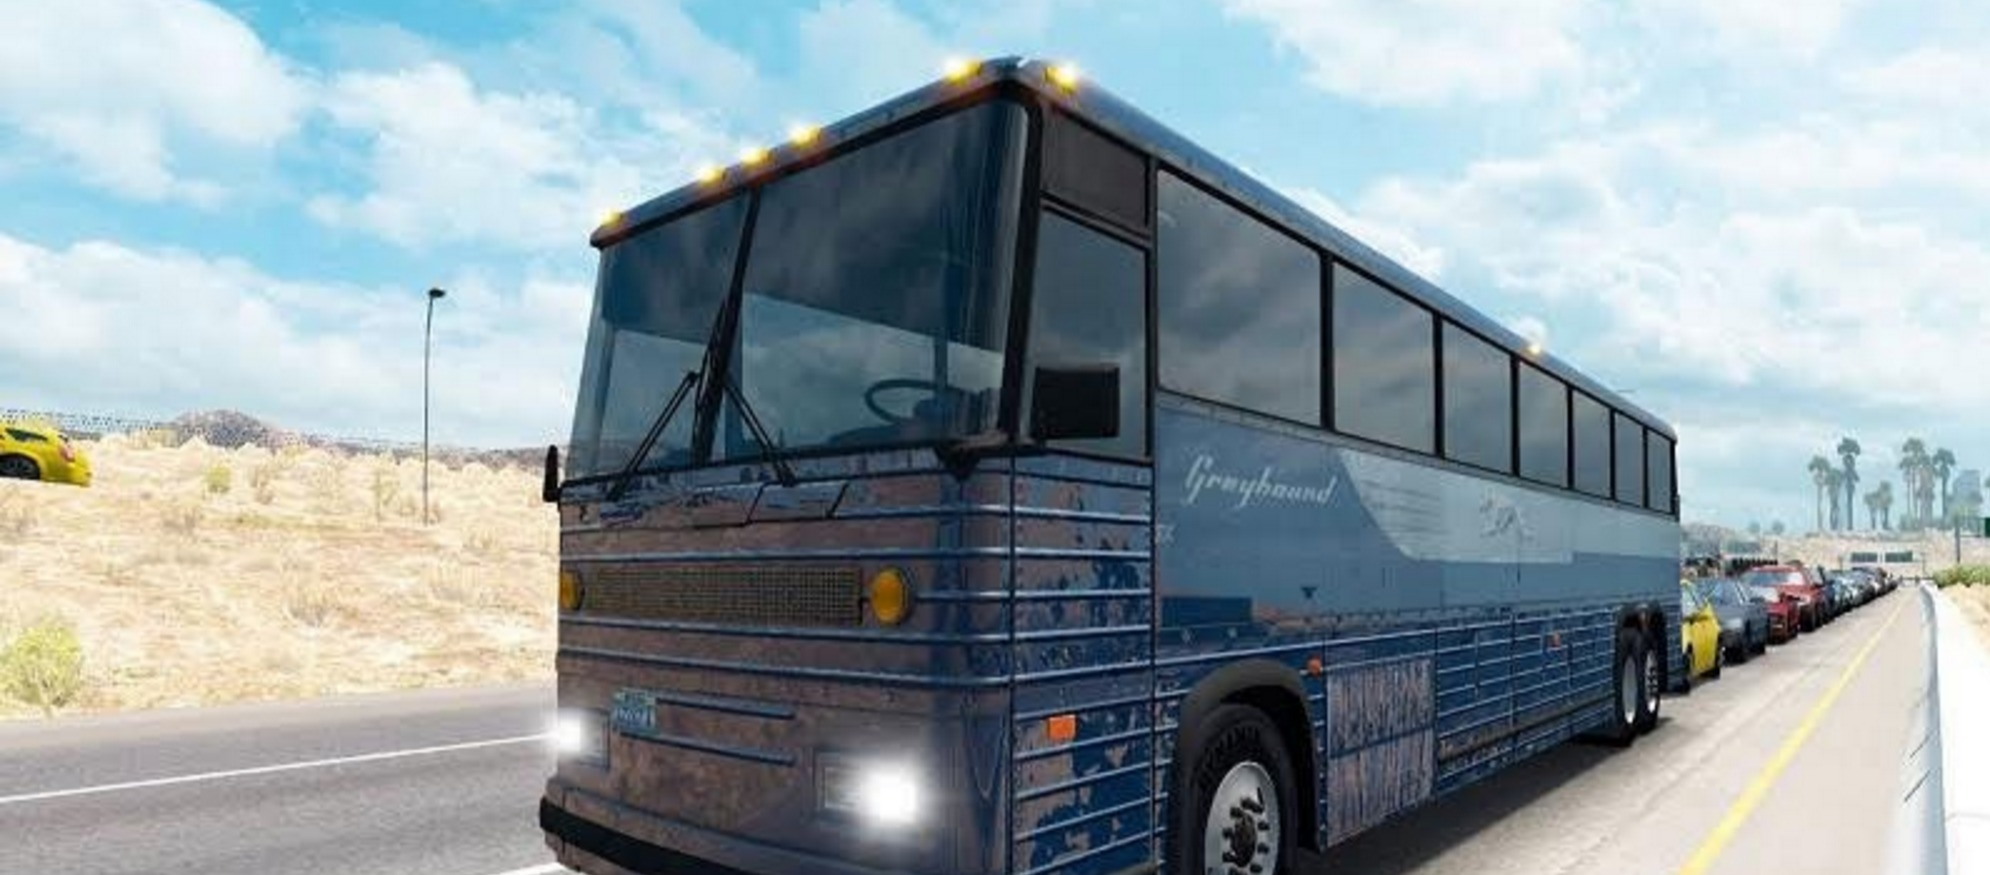 Skin Greyhound Bus for ATS - ATS Mod | American Truck ...